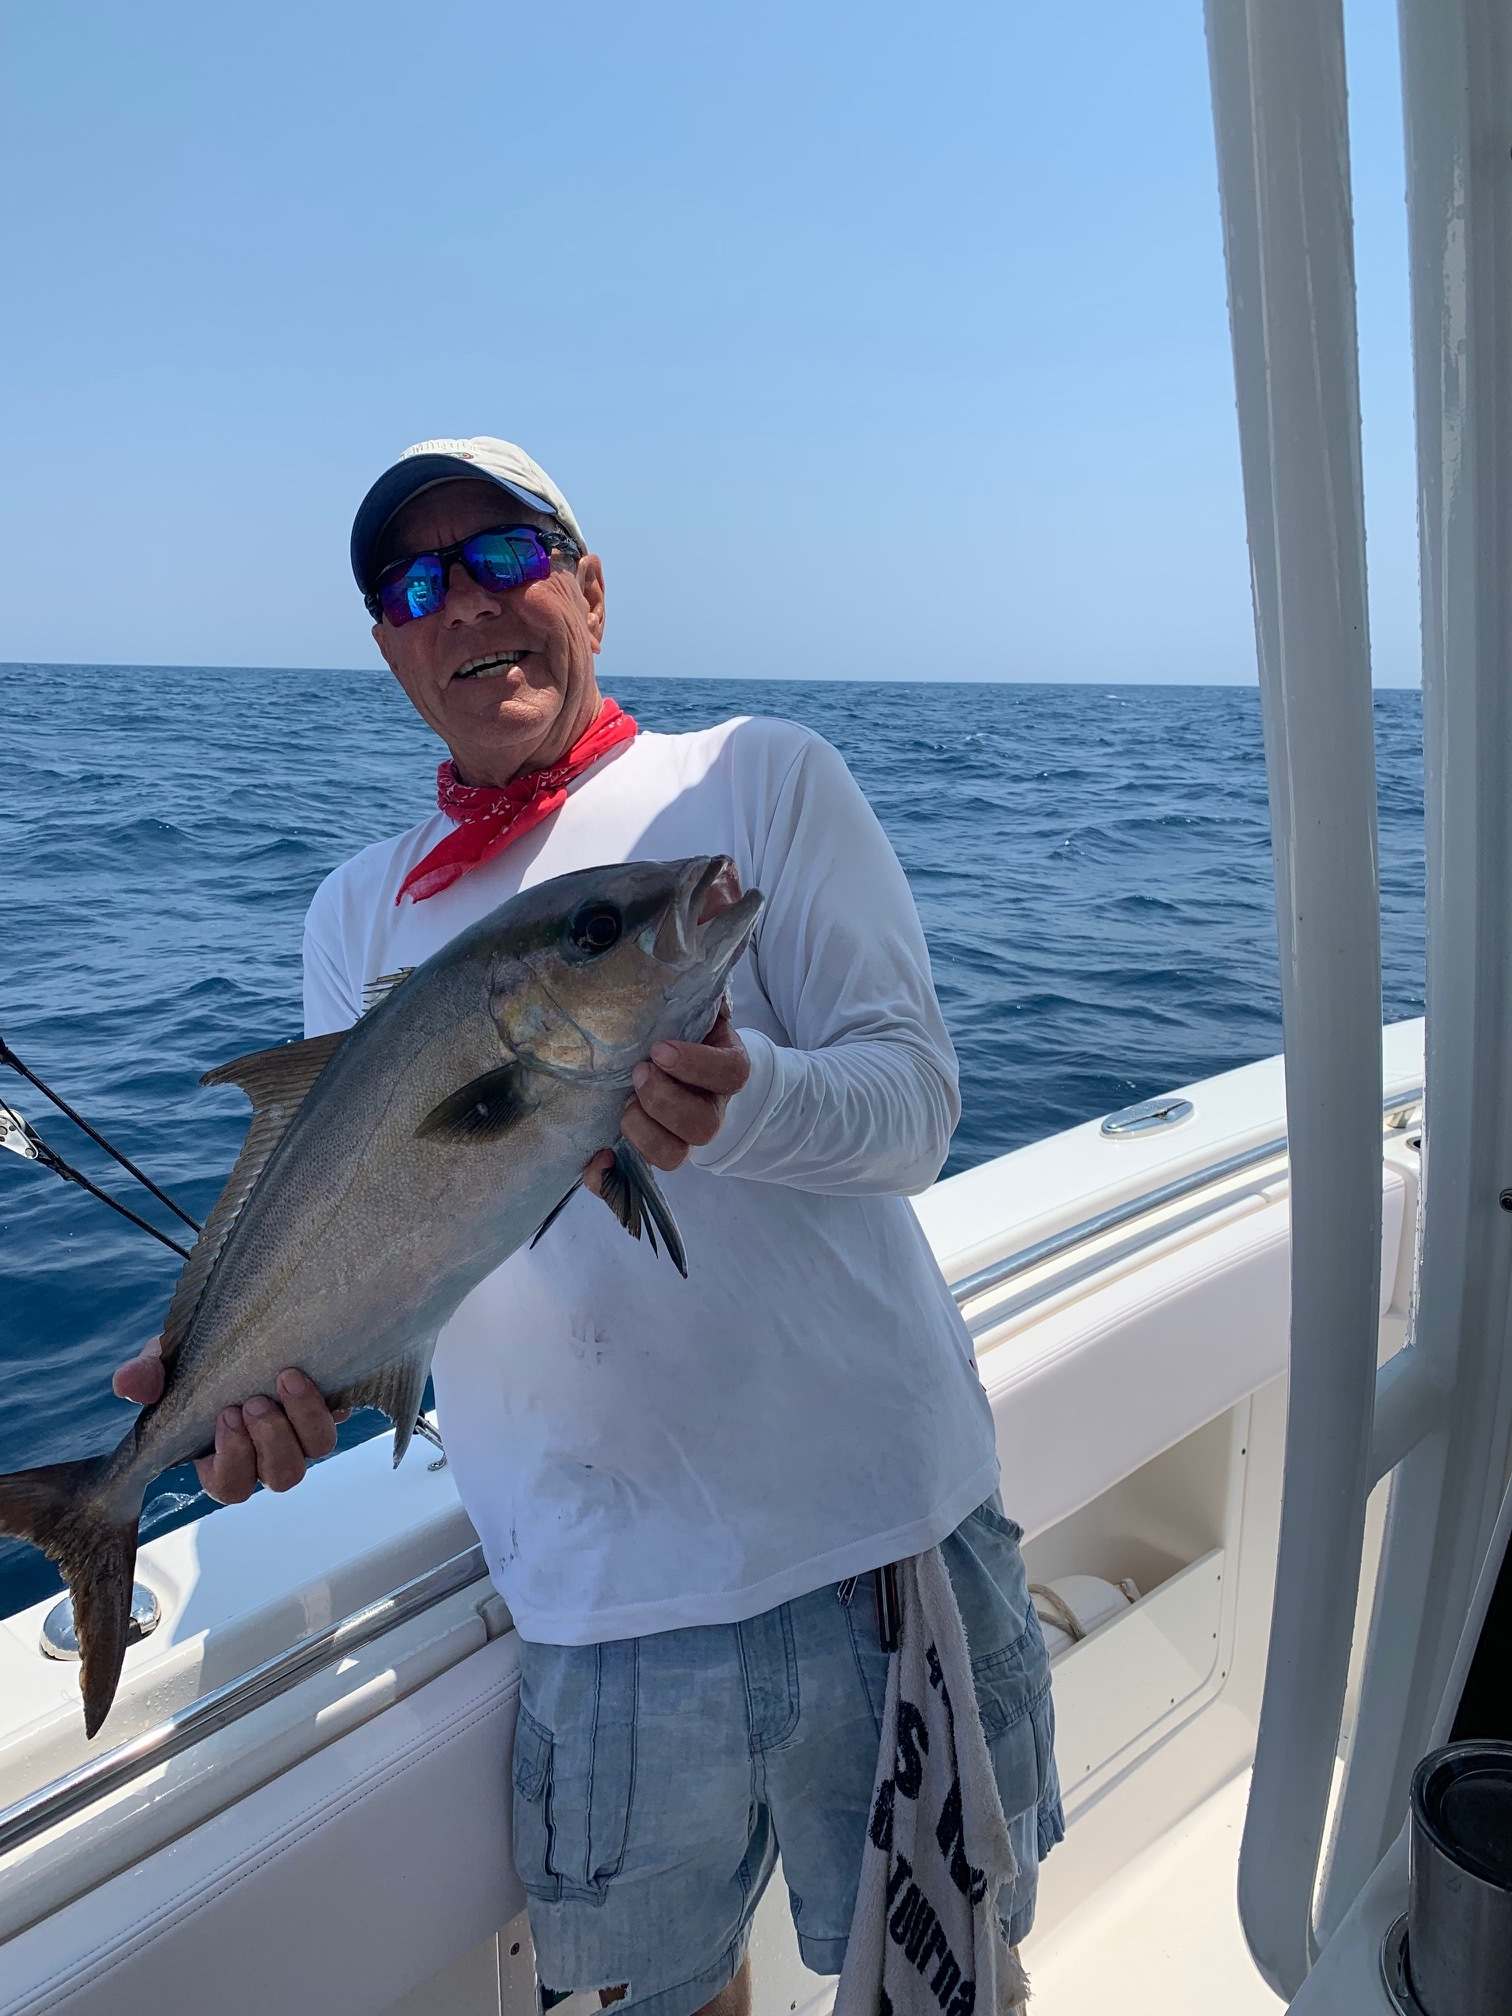 Rick & his son had a great time catching Greater Amberjack, Red Porgy, & Red Snapper today!